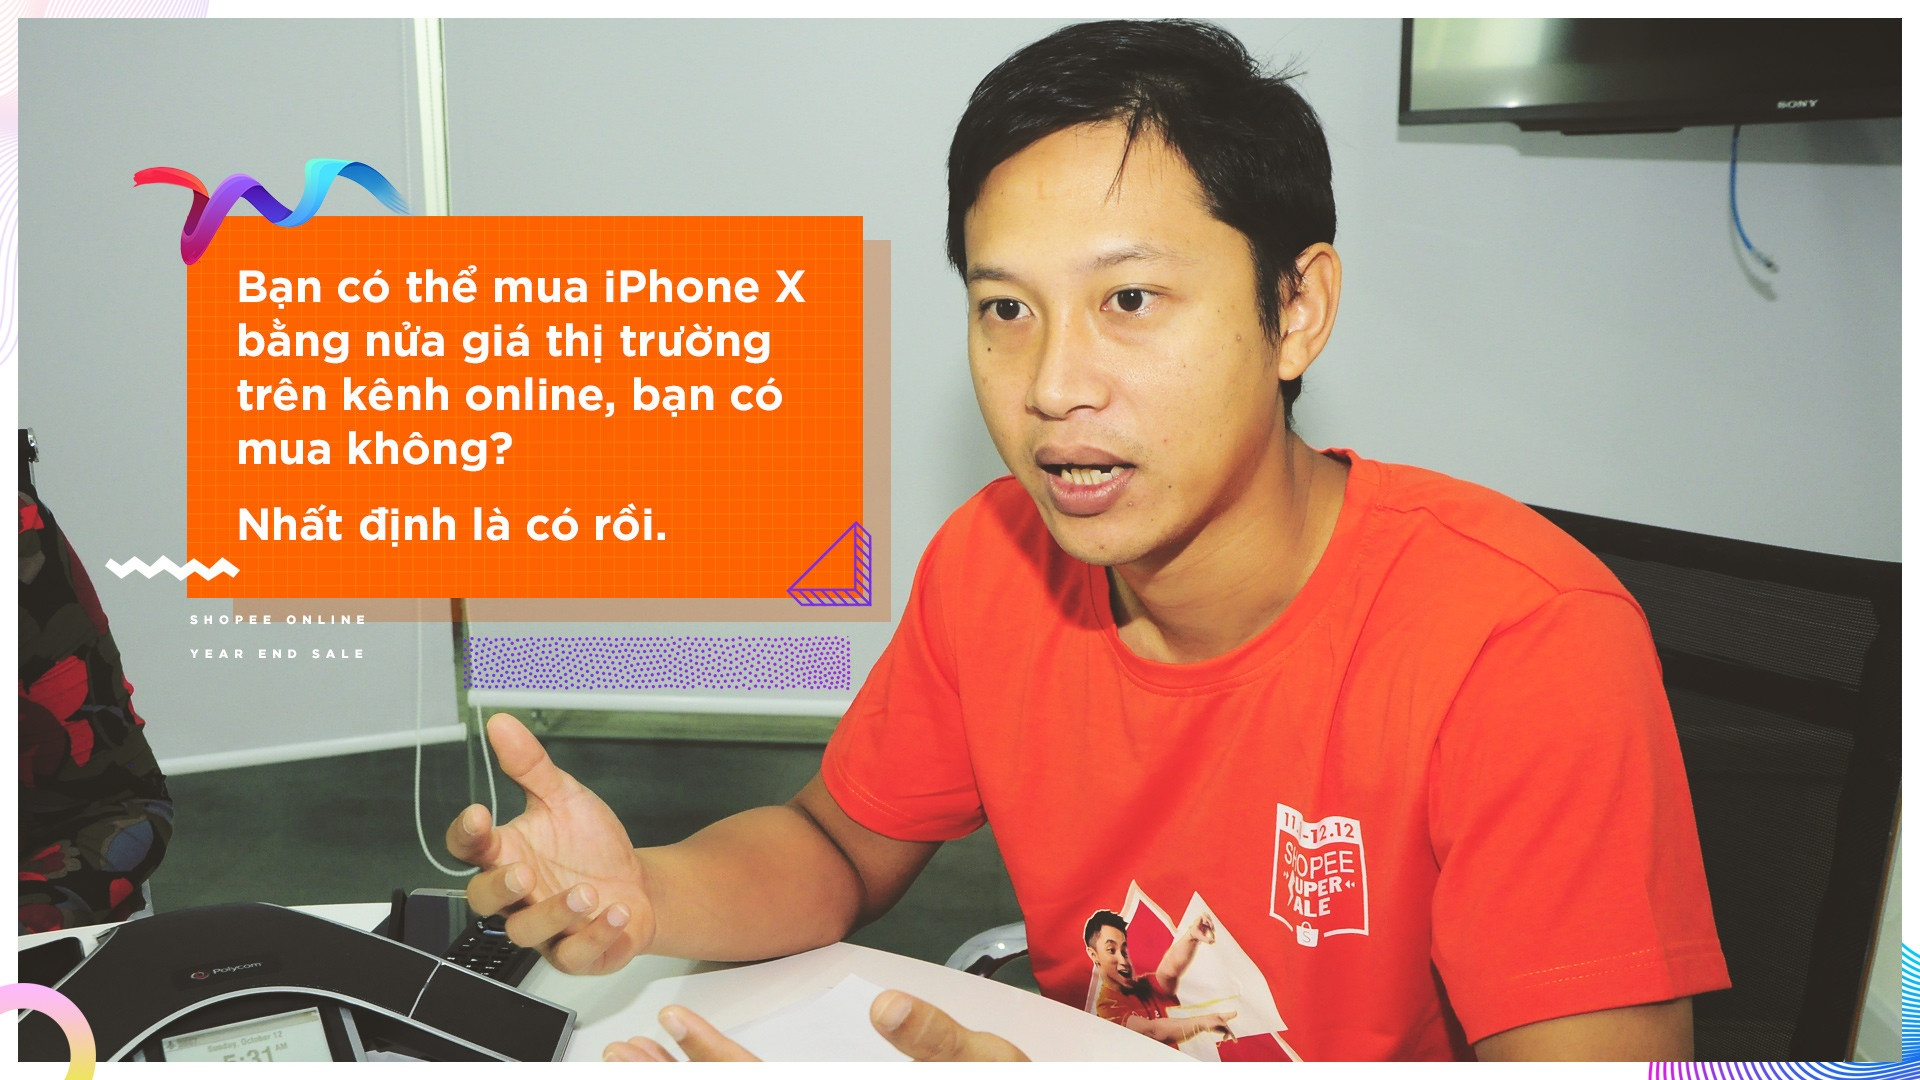 Shopee anh 3